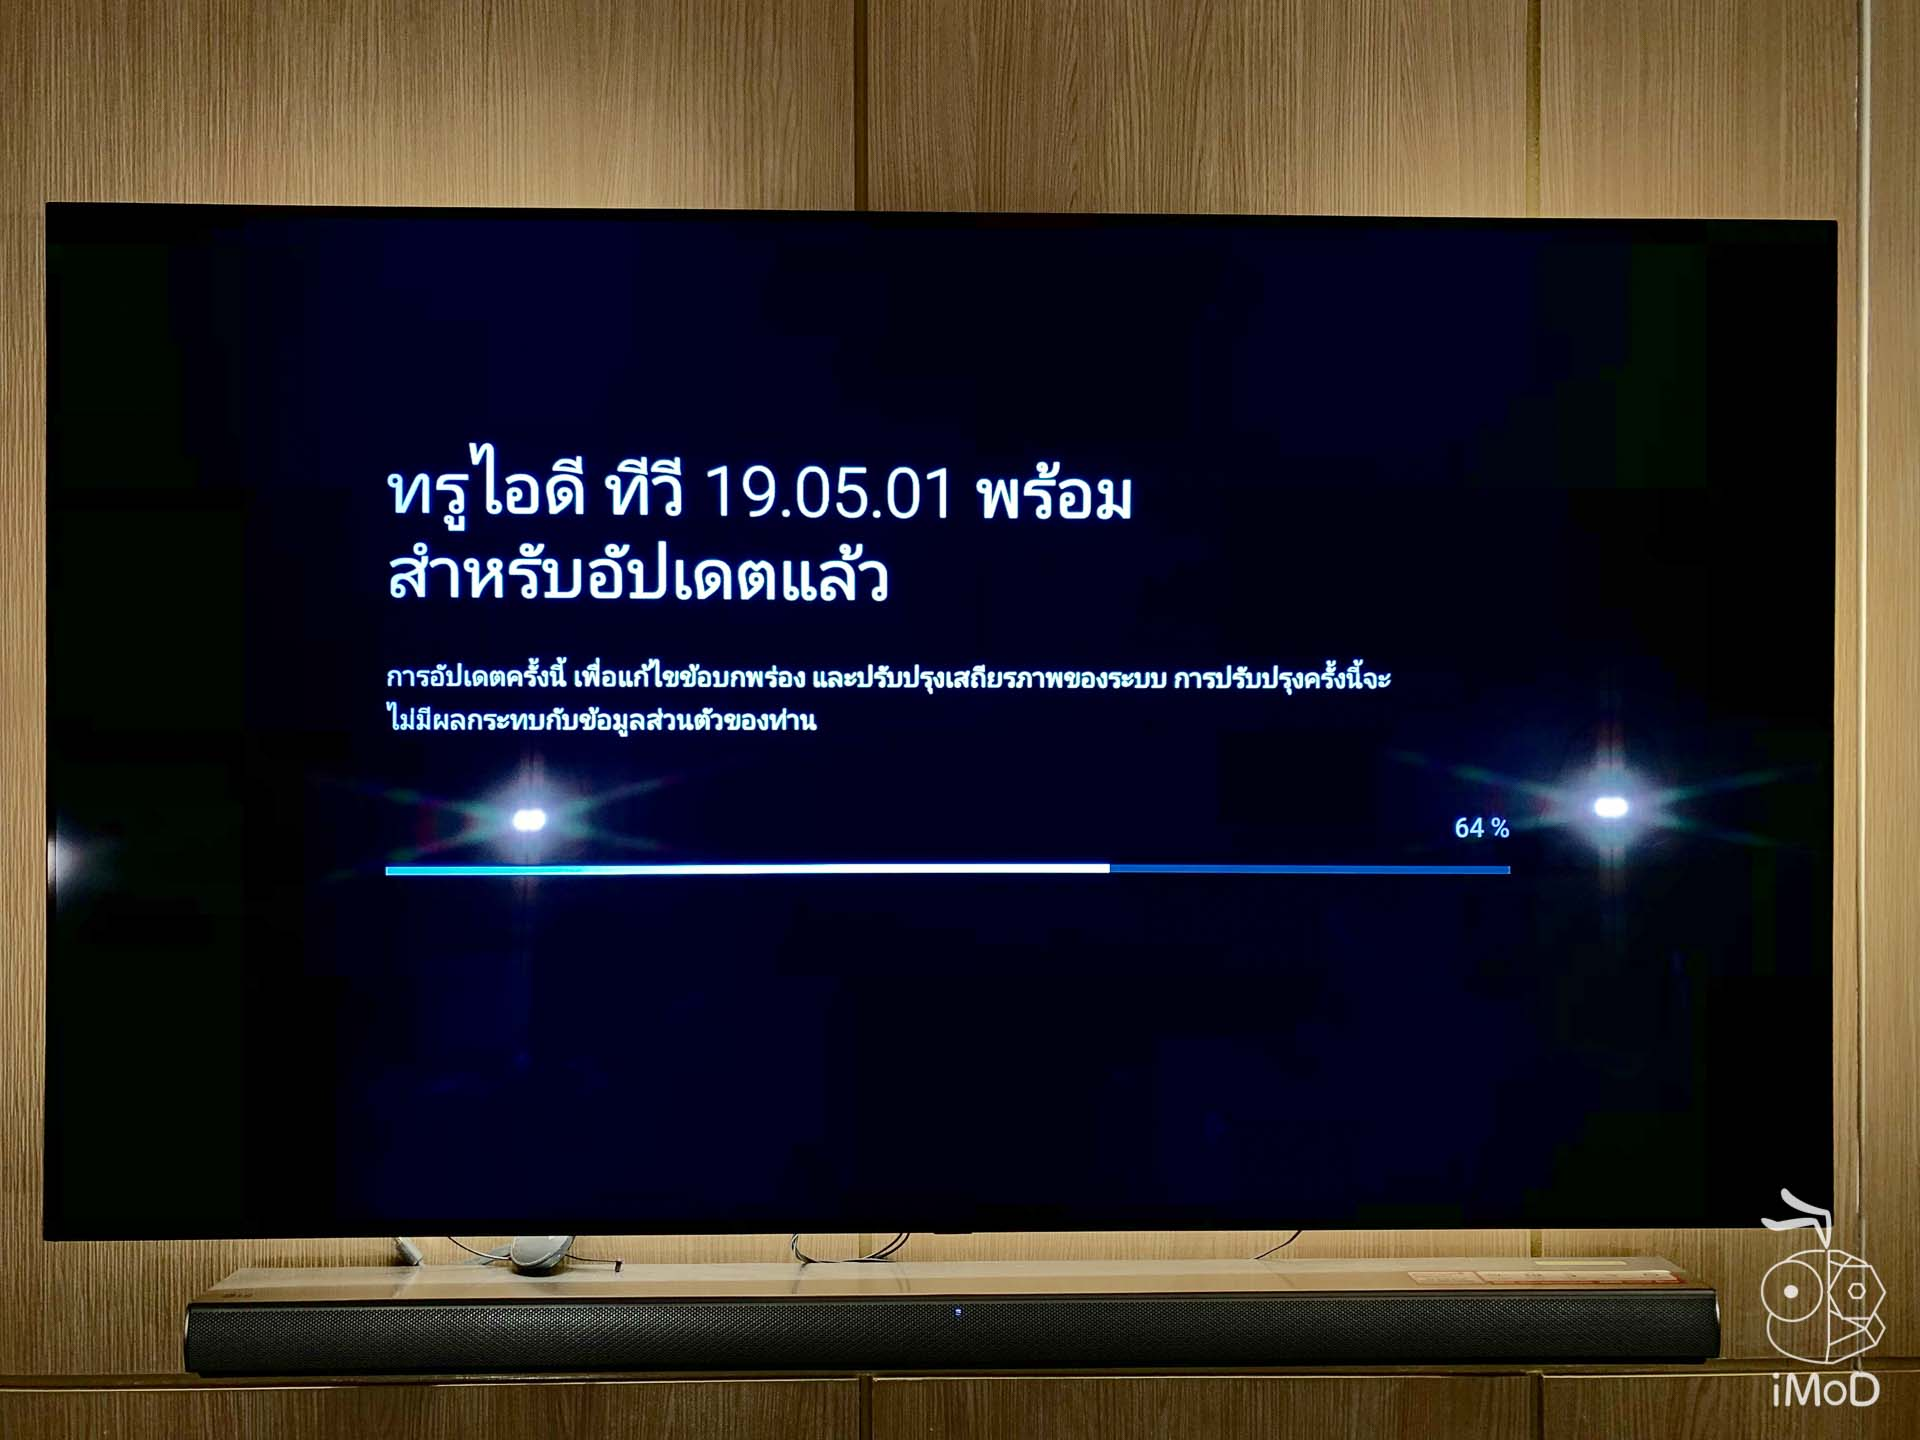 Trueid Tv กล่อง Android Tv รุ่น 2 Review 7166